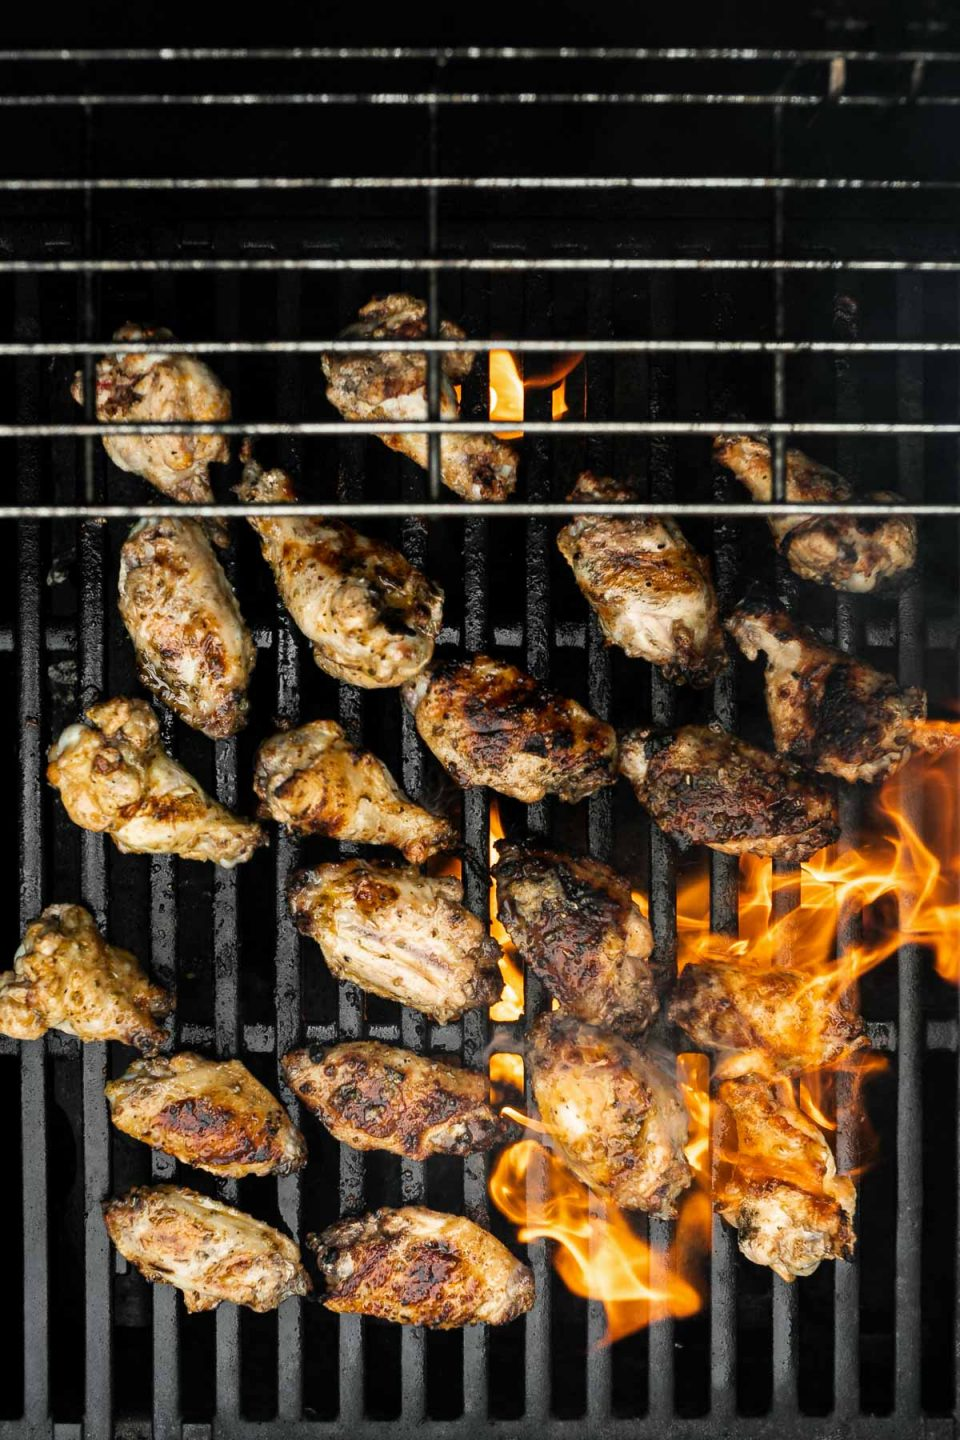 Grilled Greek Chicken Wings being char-grilled on a Weber Grill over direct heat. Flames from the grill burners are present as the chicken wings finish on the grill.